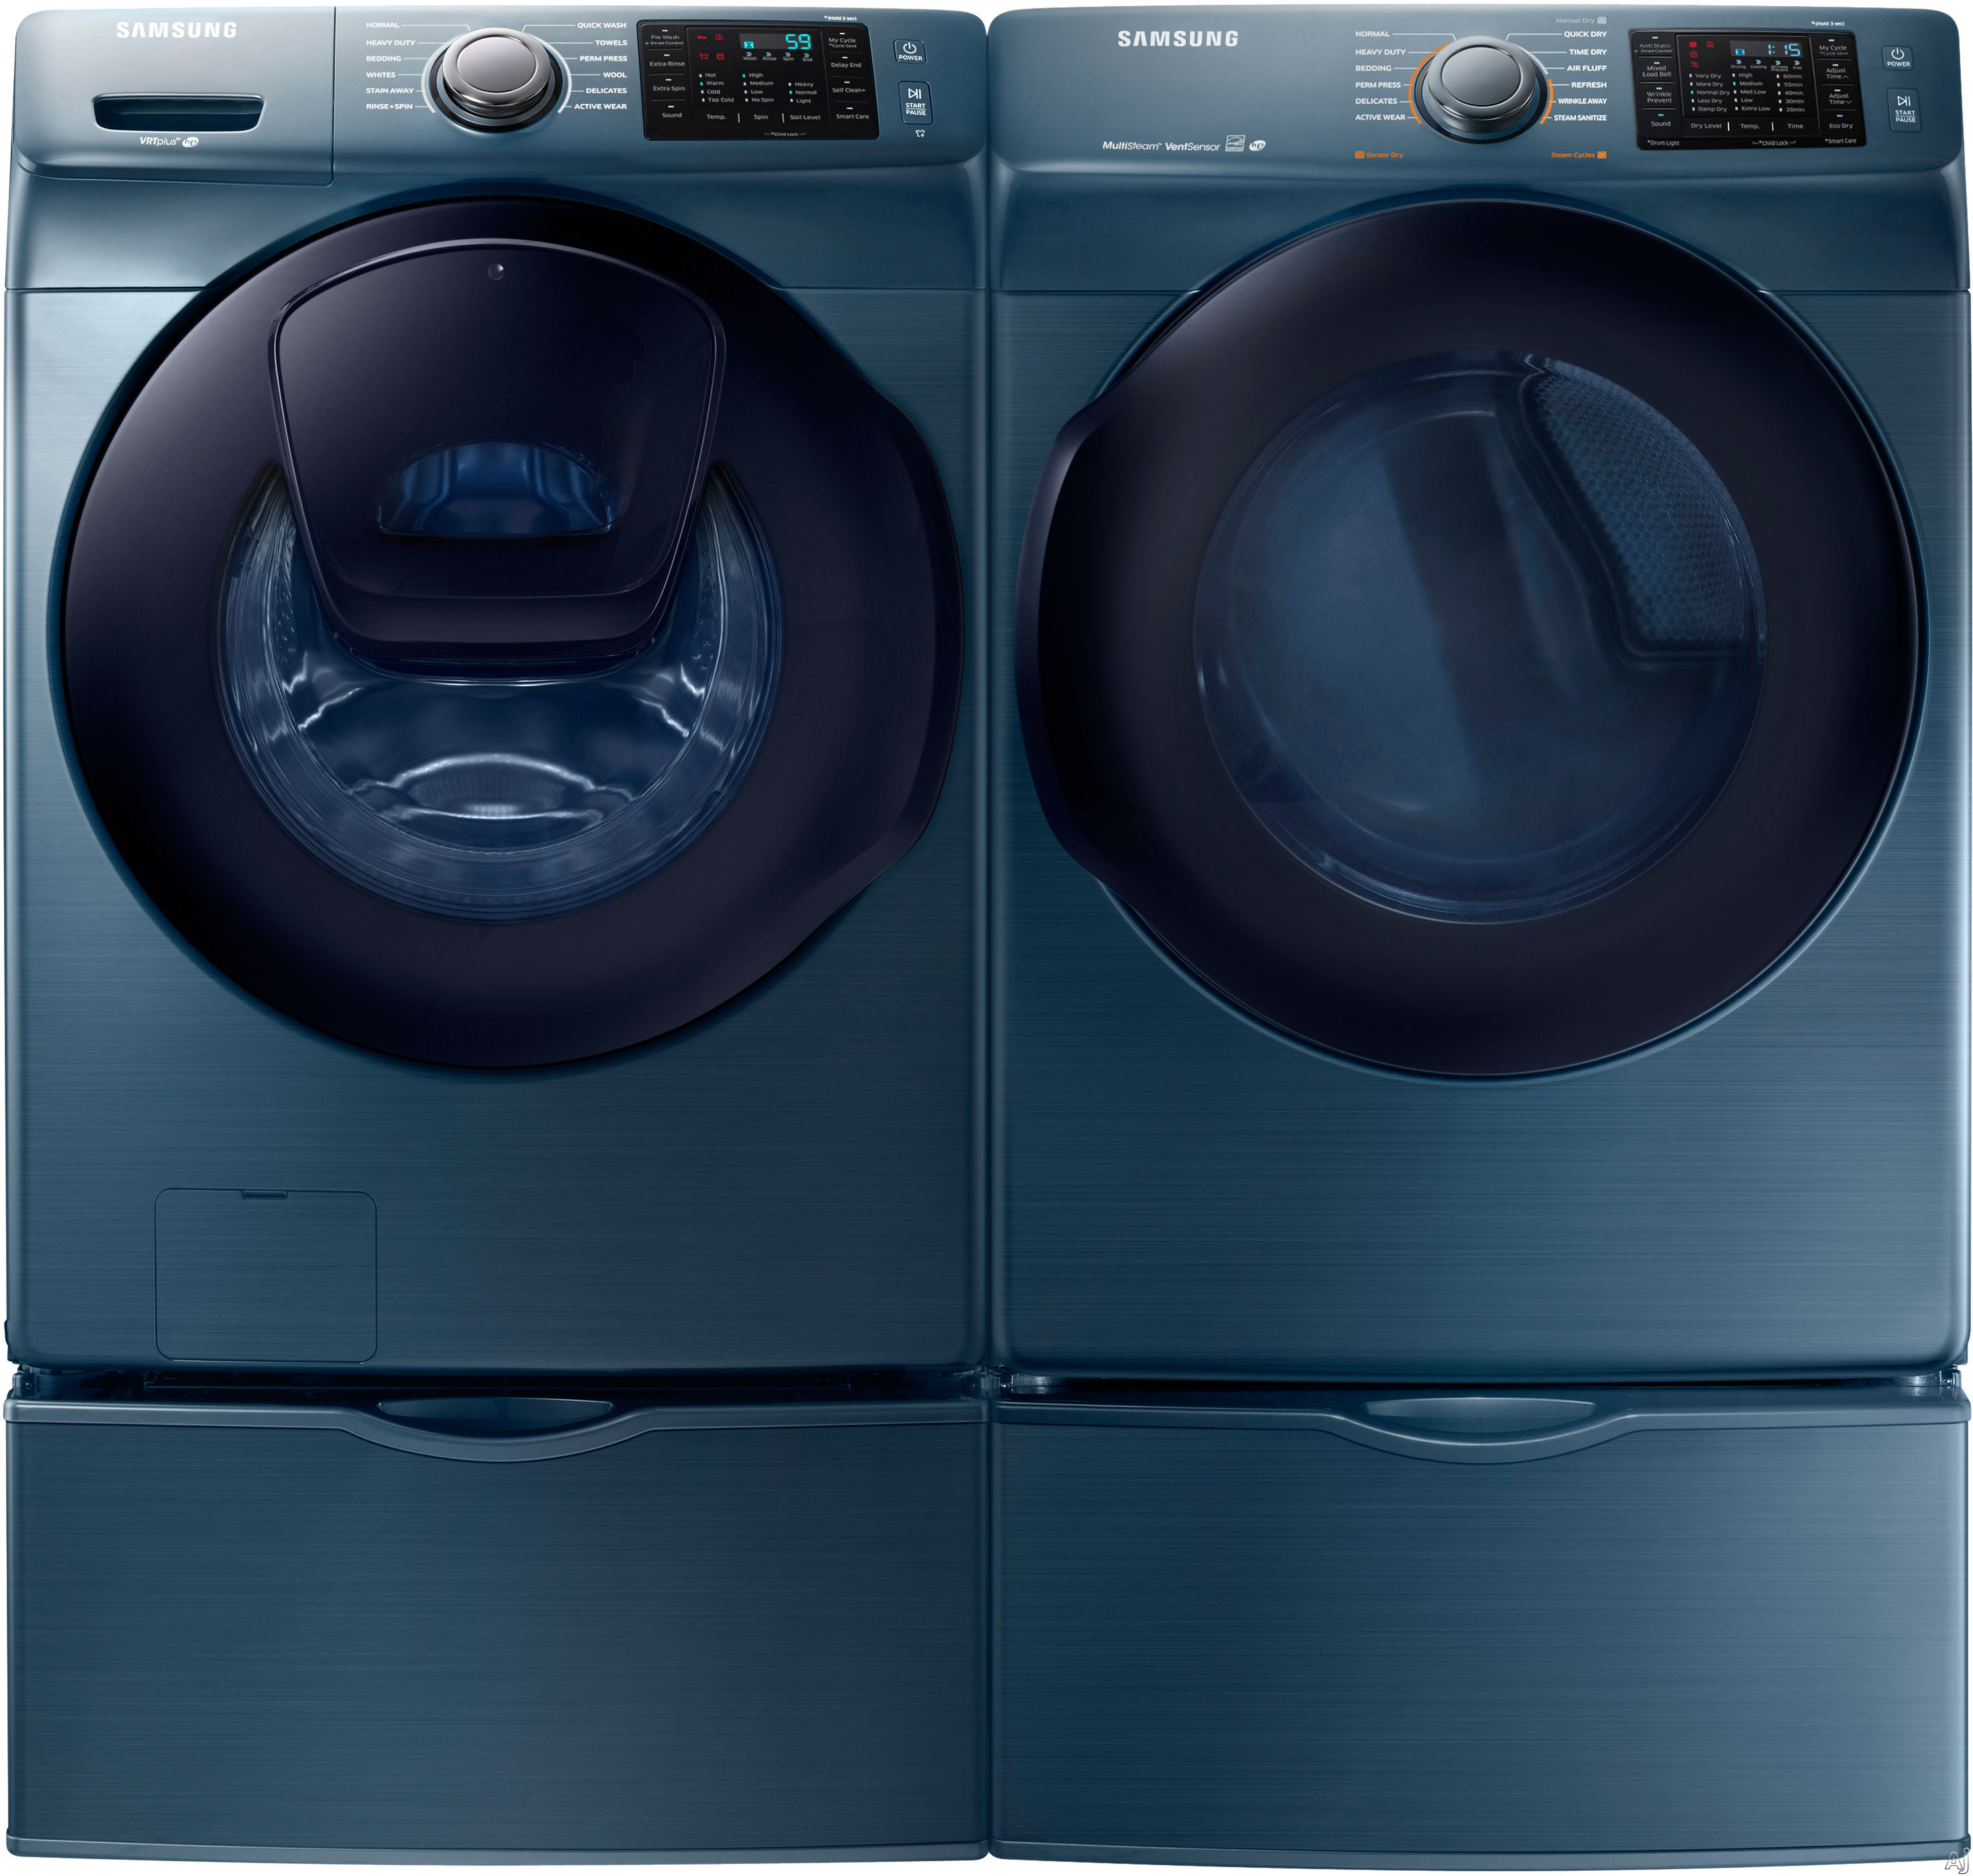 Samsung SAWADRGA27 Side-by-Side on Pedestals Washer & Dryer Set with Front Load Washer and Gas Dryer in Azure